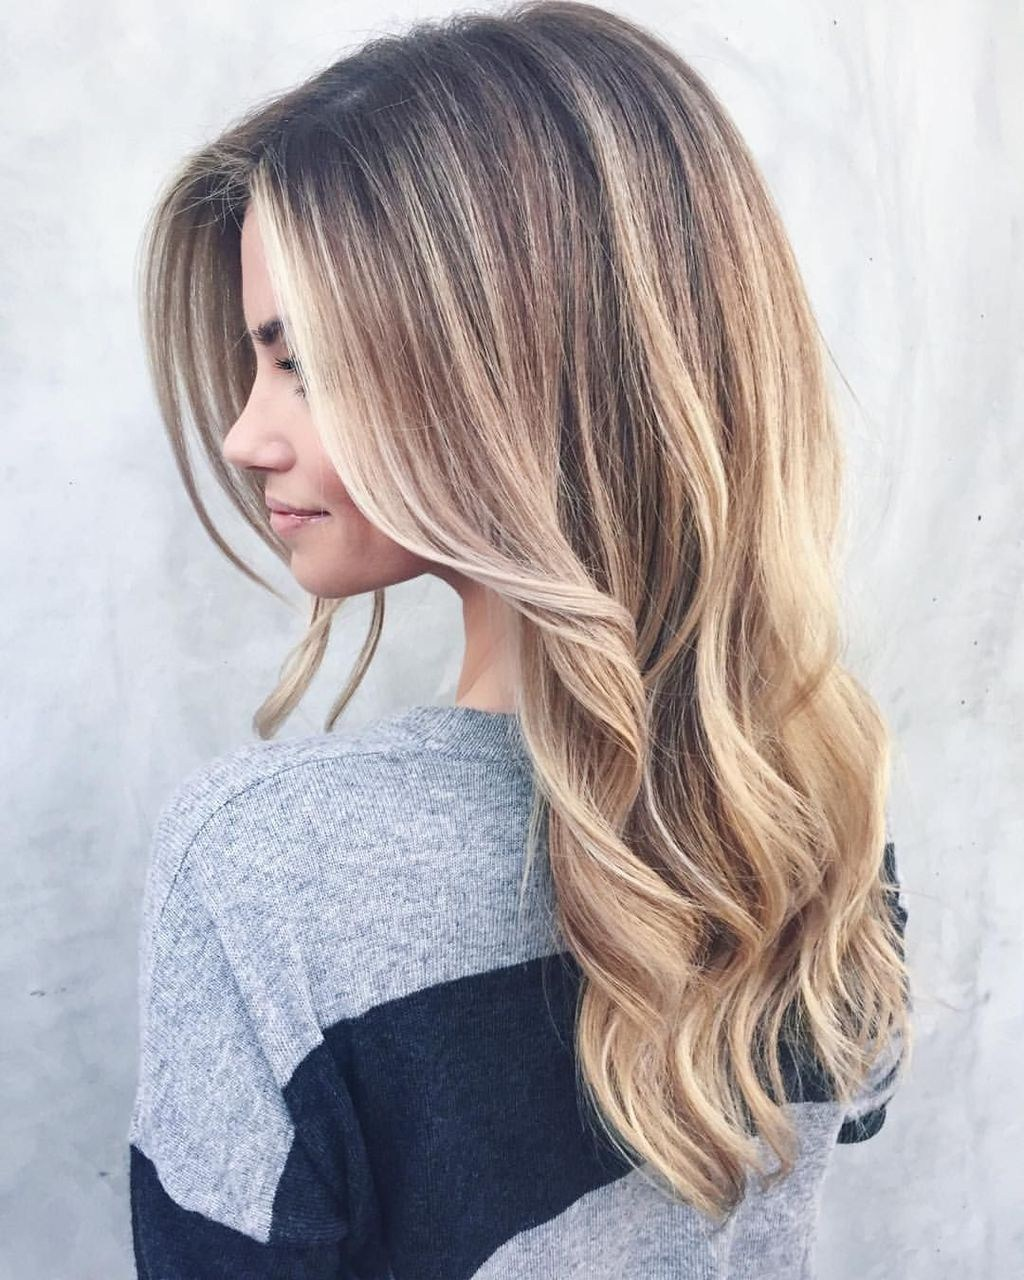 Hot Blonde Balayage Hairstyle Ideas For Any Season 03